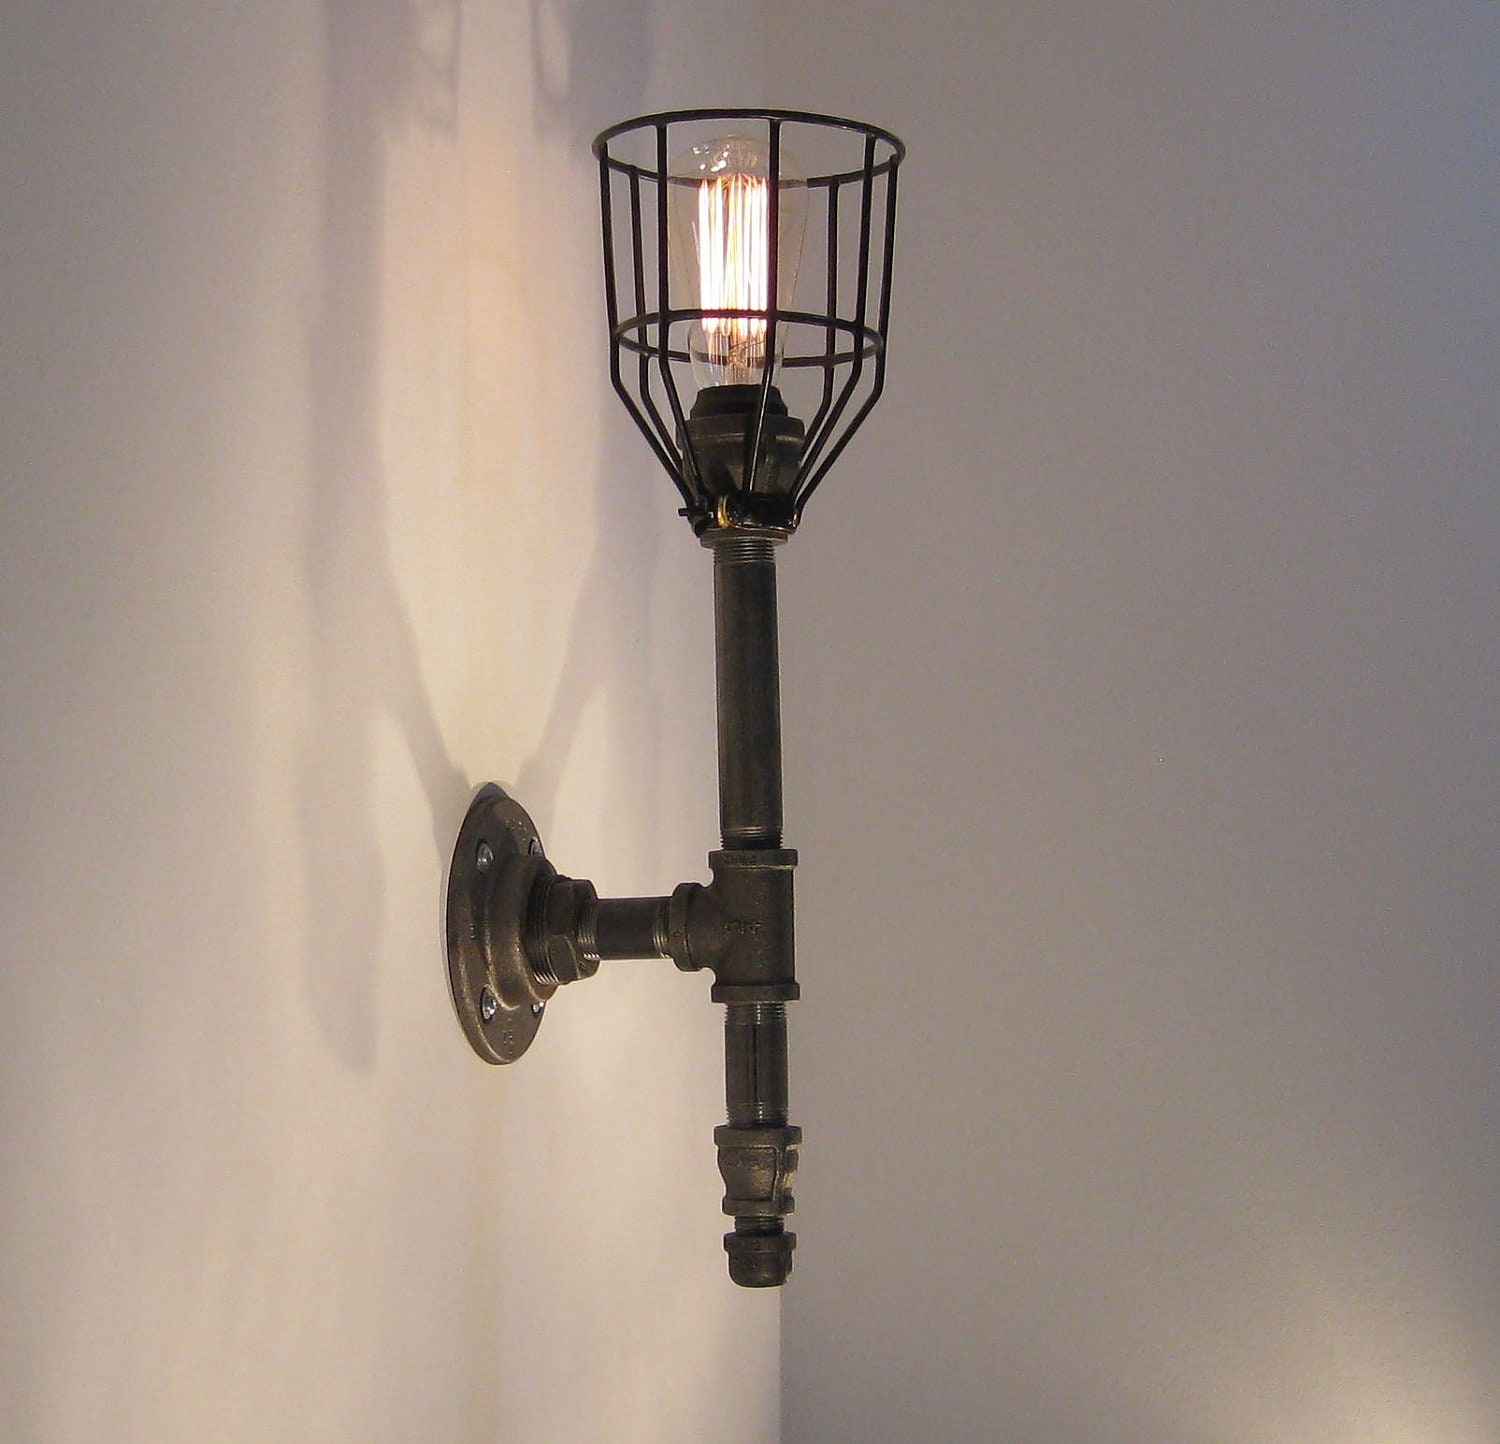 Wall Lamps Etsy : Wall Sconce: Black Malleable Iron Industrial Steampunk